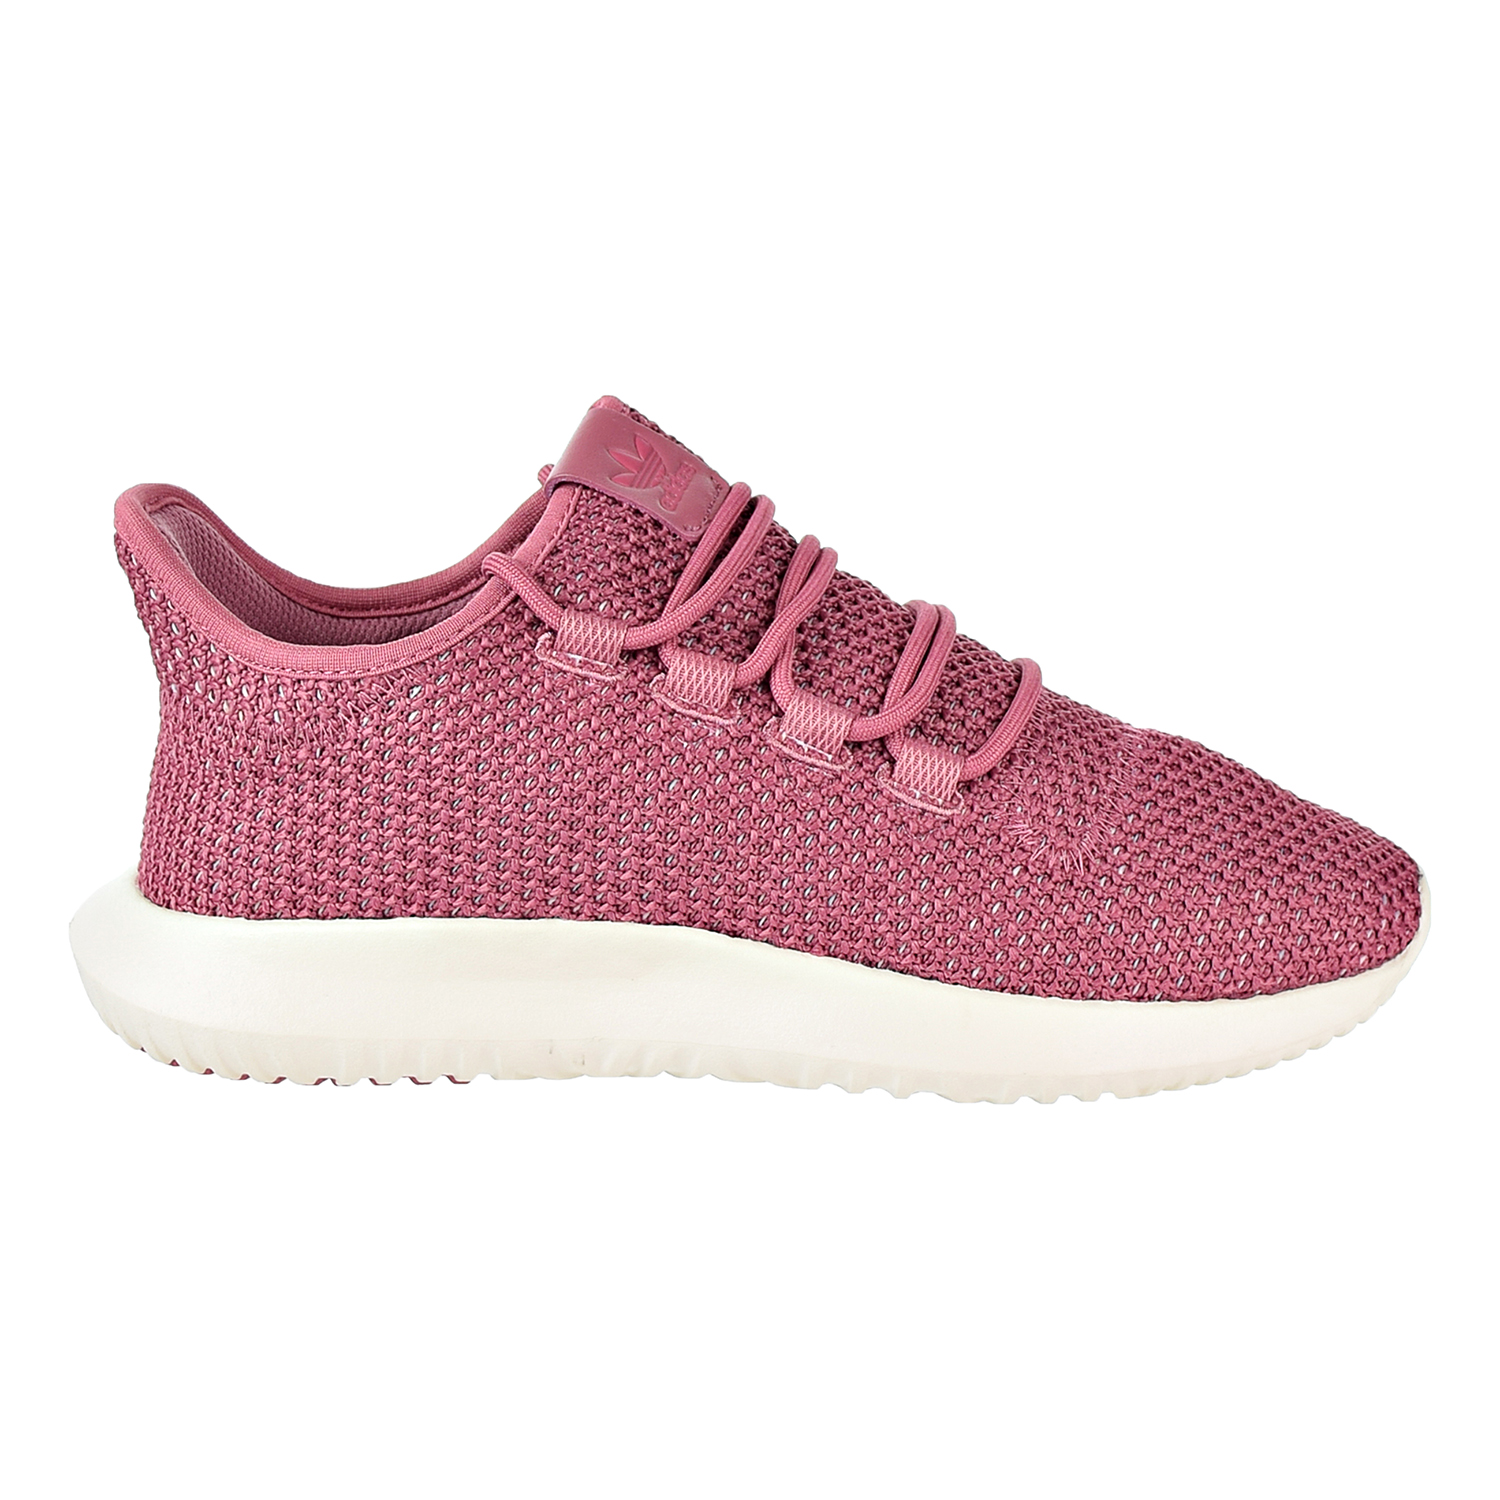 93a202b06e522e ... france details about adidas tubular shadow ck womens shoes pink b37759  5a93c c24d1